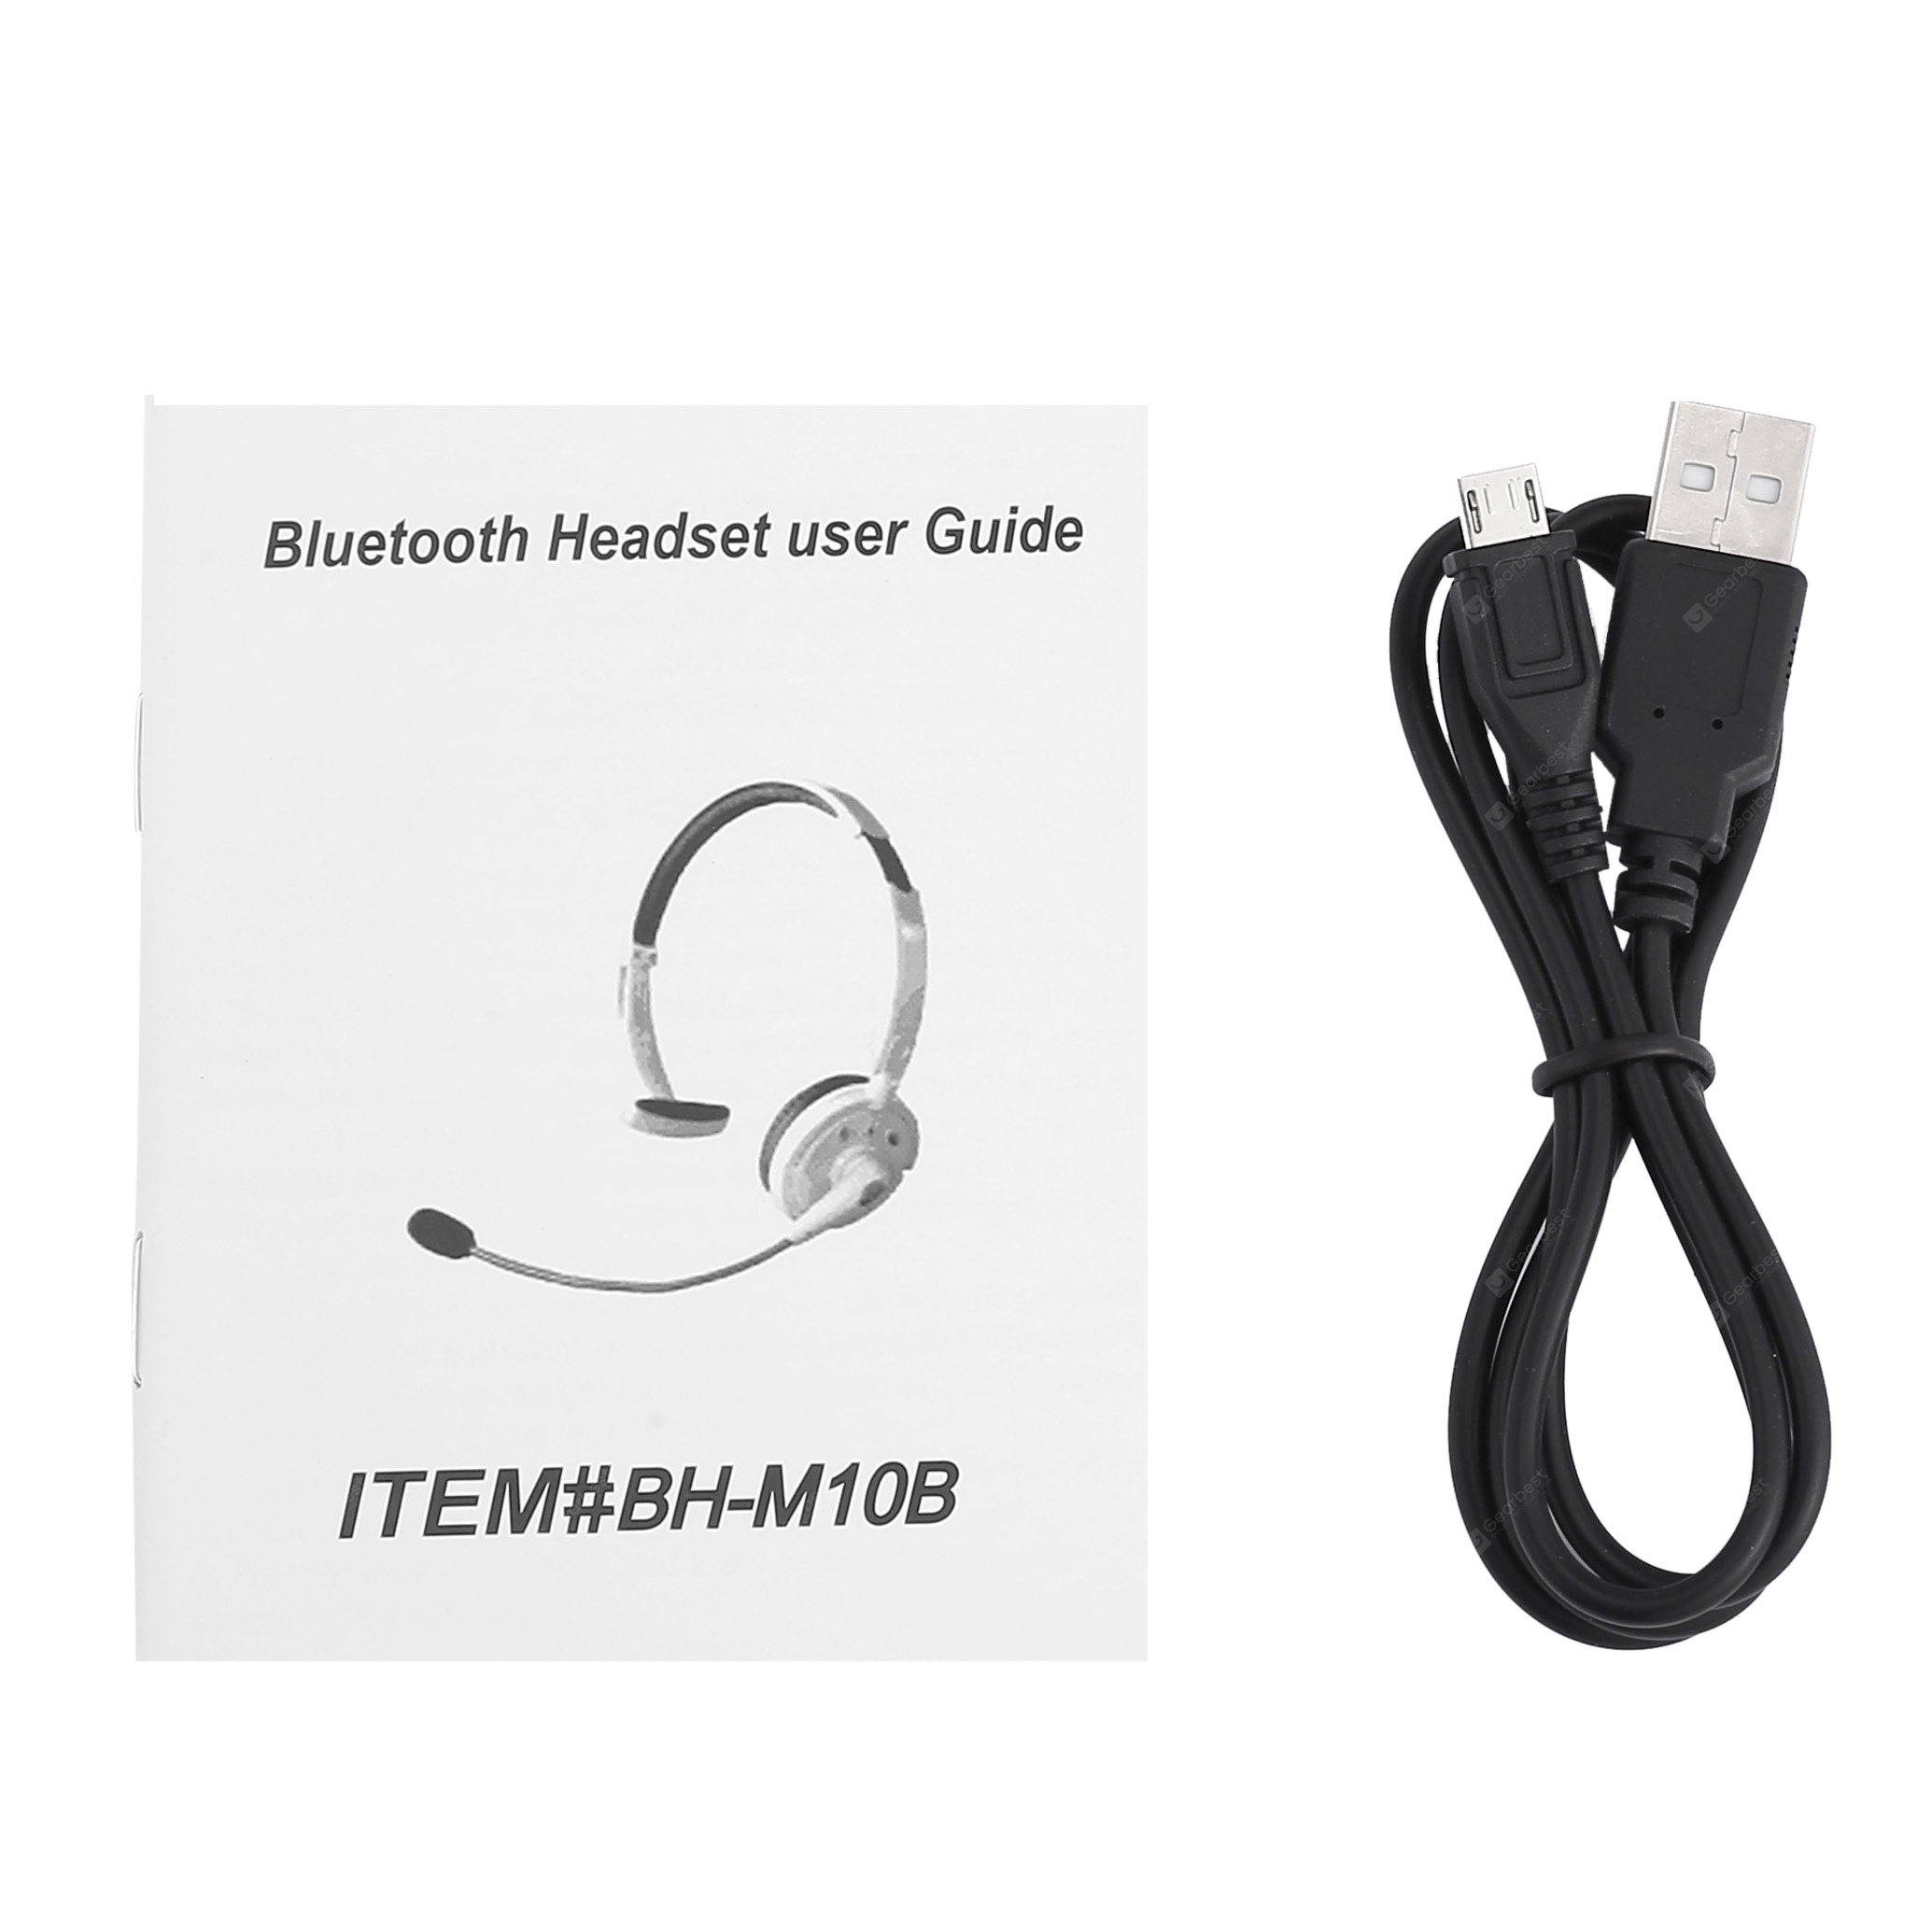 663e13502e7 https://www.gearbest.com/bluetooth-headphones/pp_1067718.html ...